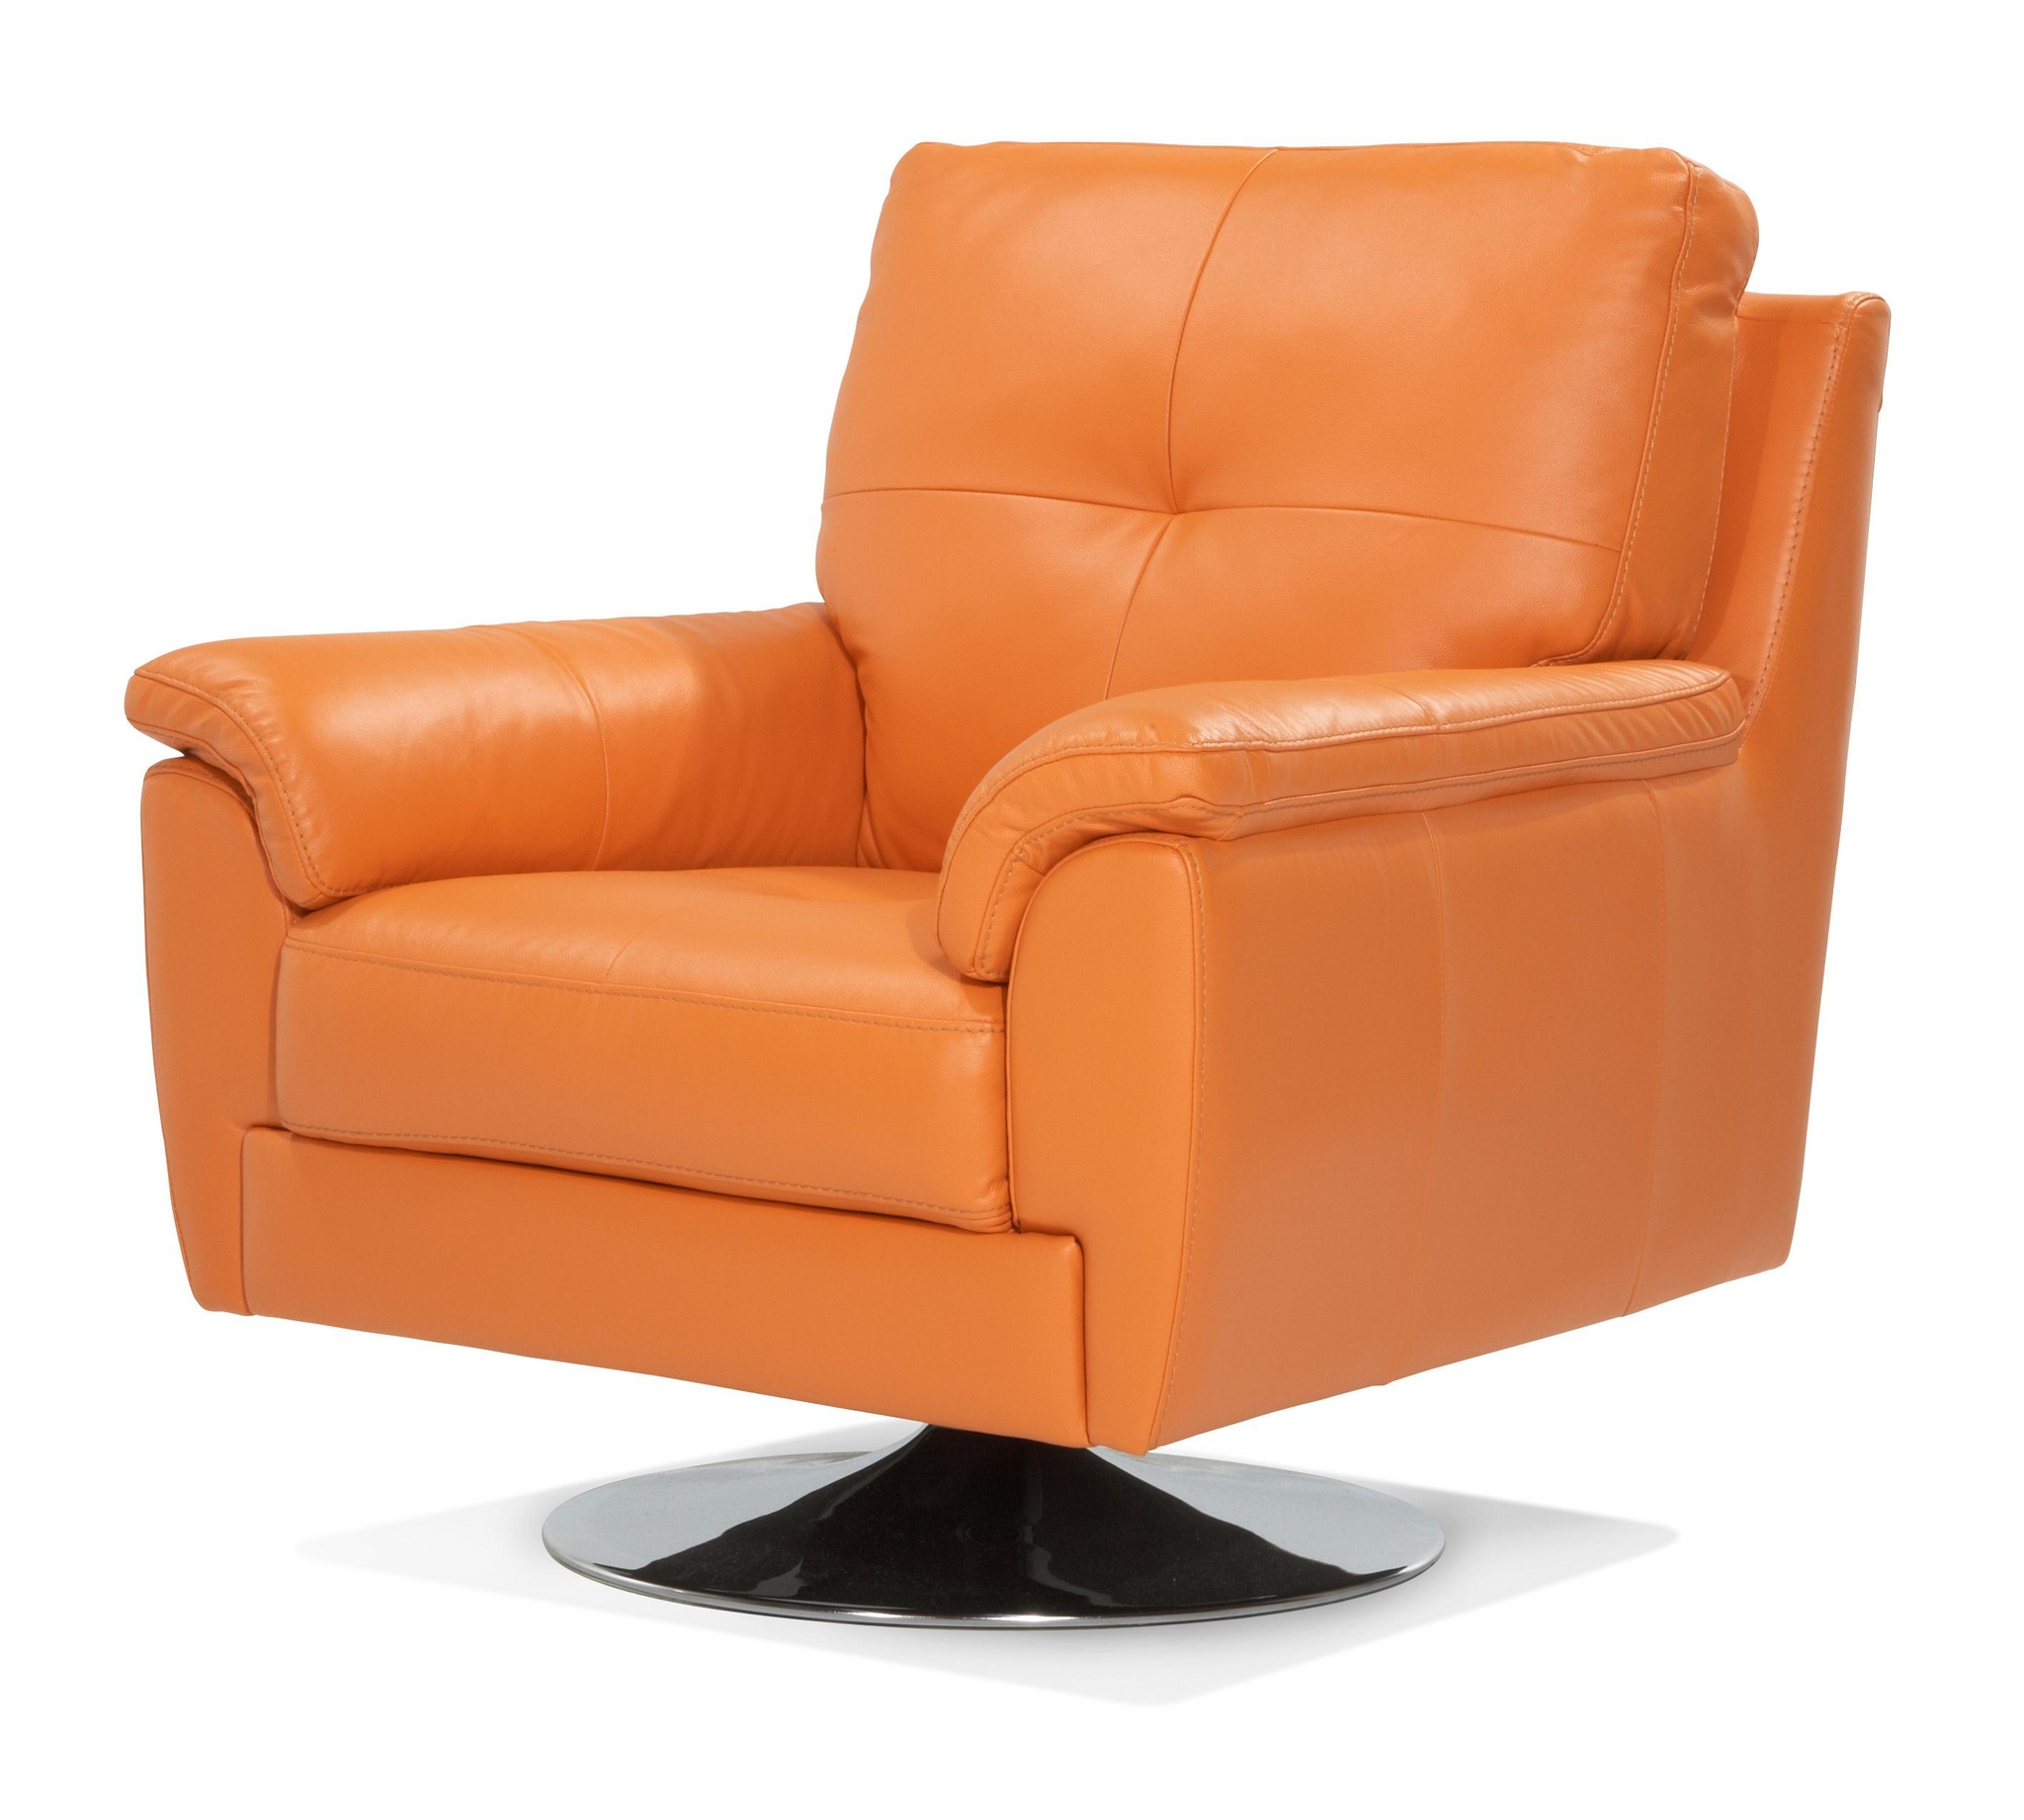 Leather Sofas At Dfs: DFS AINSLEY 100% REAL LEATHER ORANGE SWIVEL CHAIR